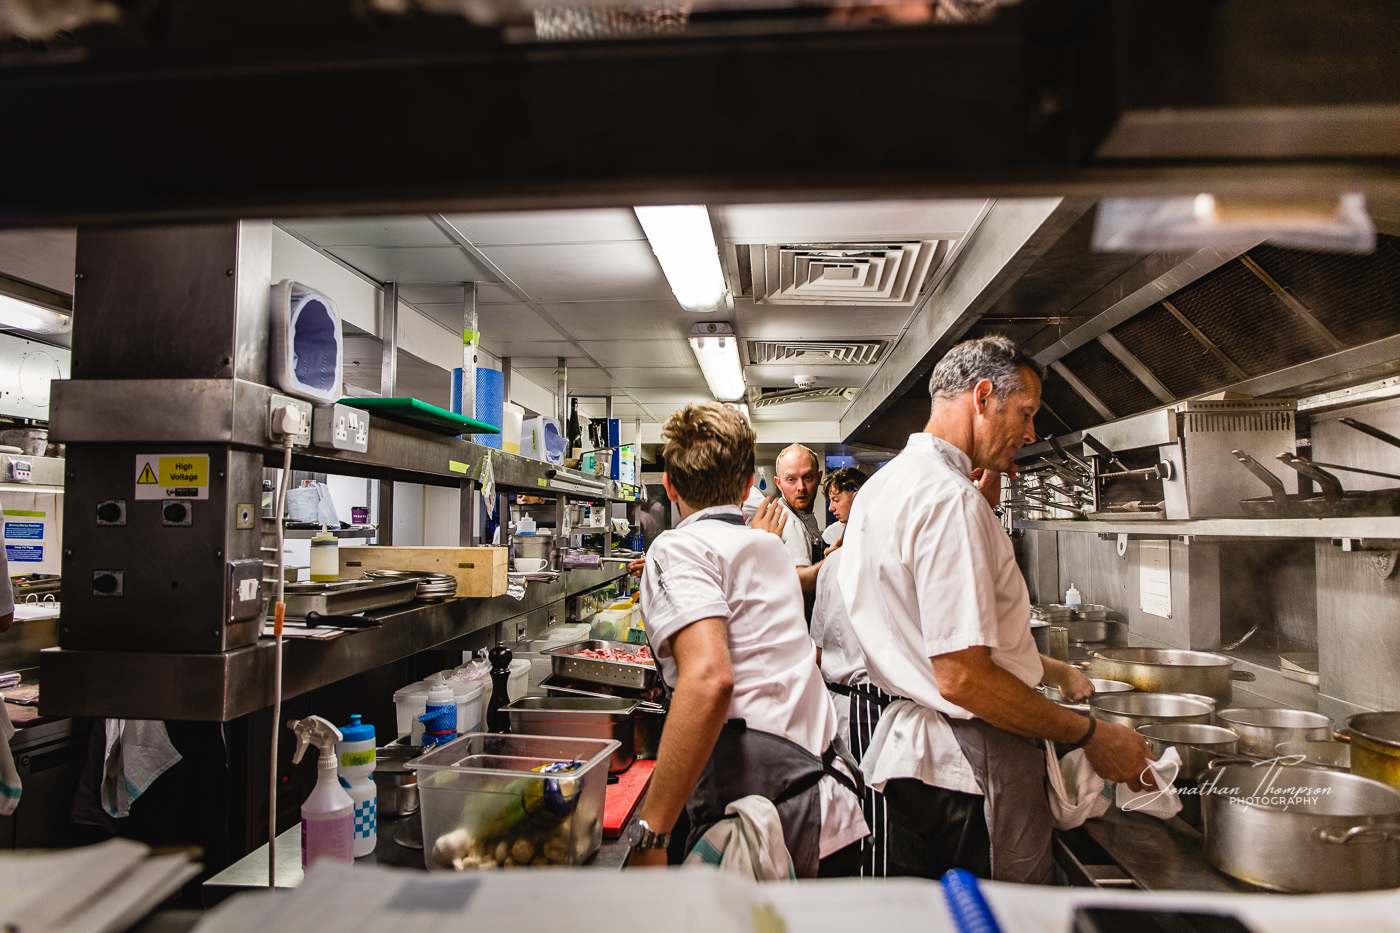 Viewed through the pass, Chef Phil Howard standing calmly at the stove whilst behind him two chefs reach towards each during service.